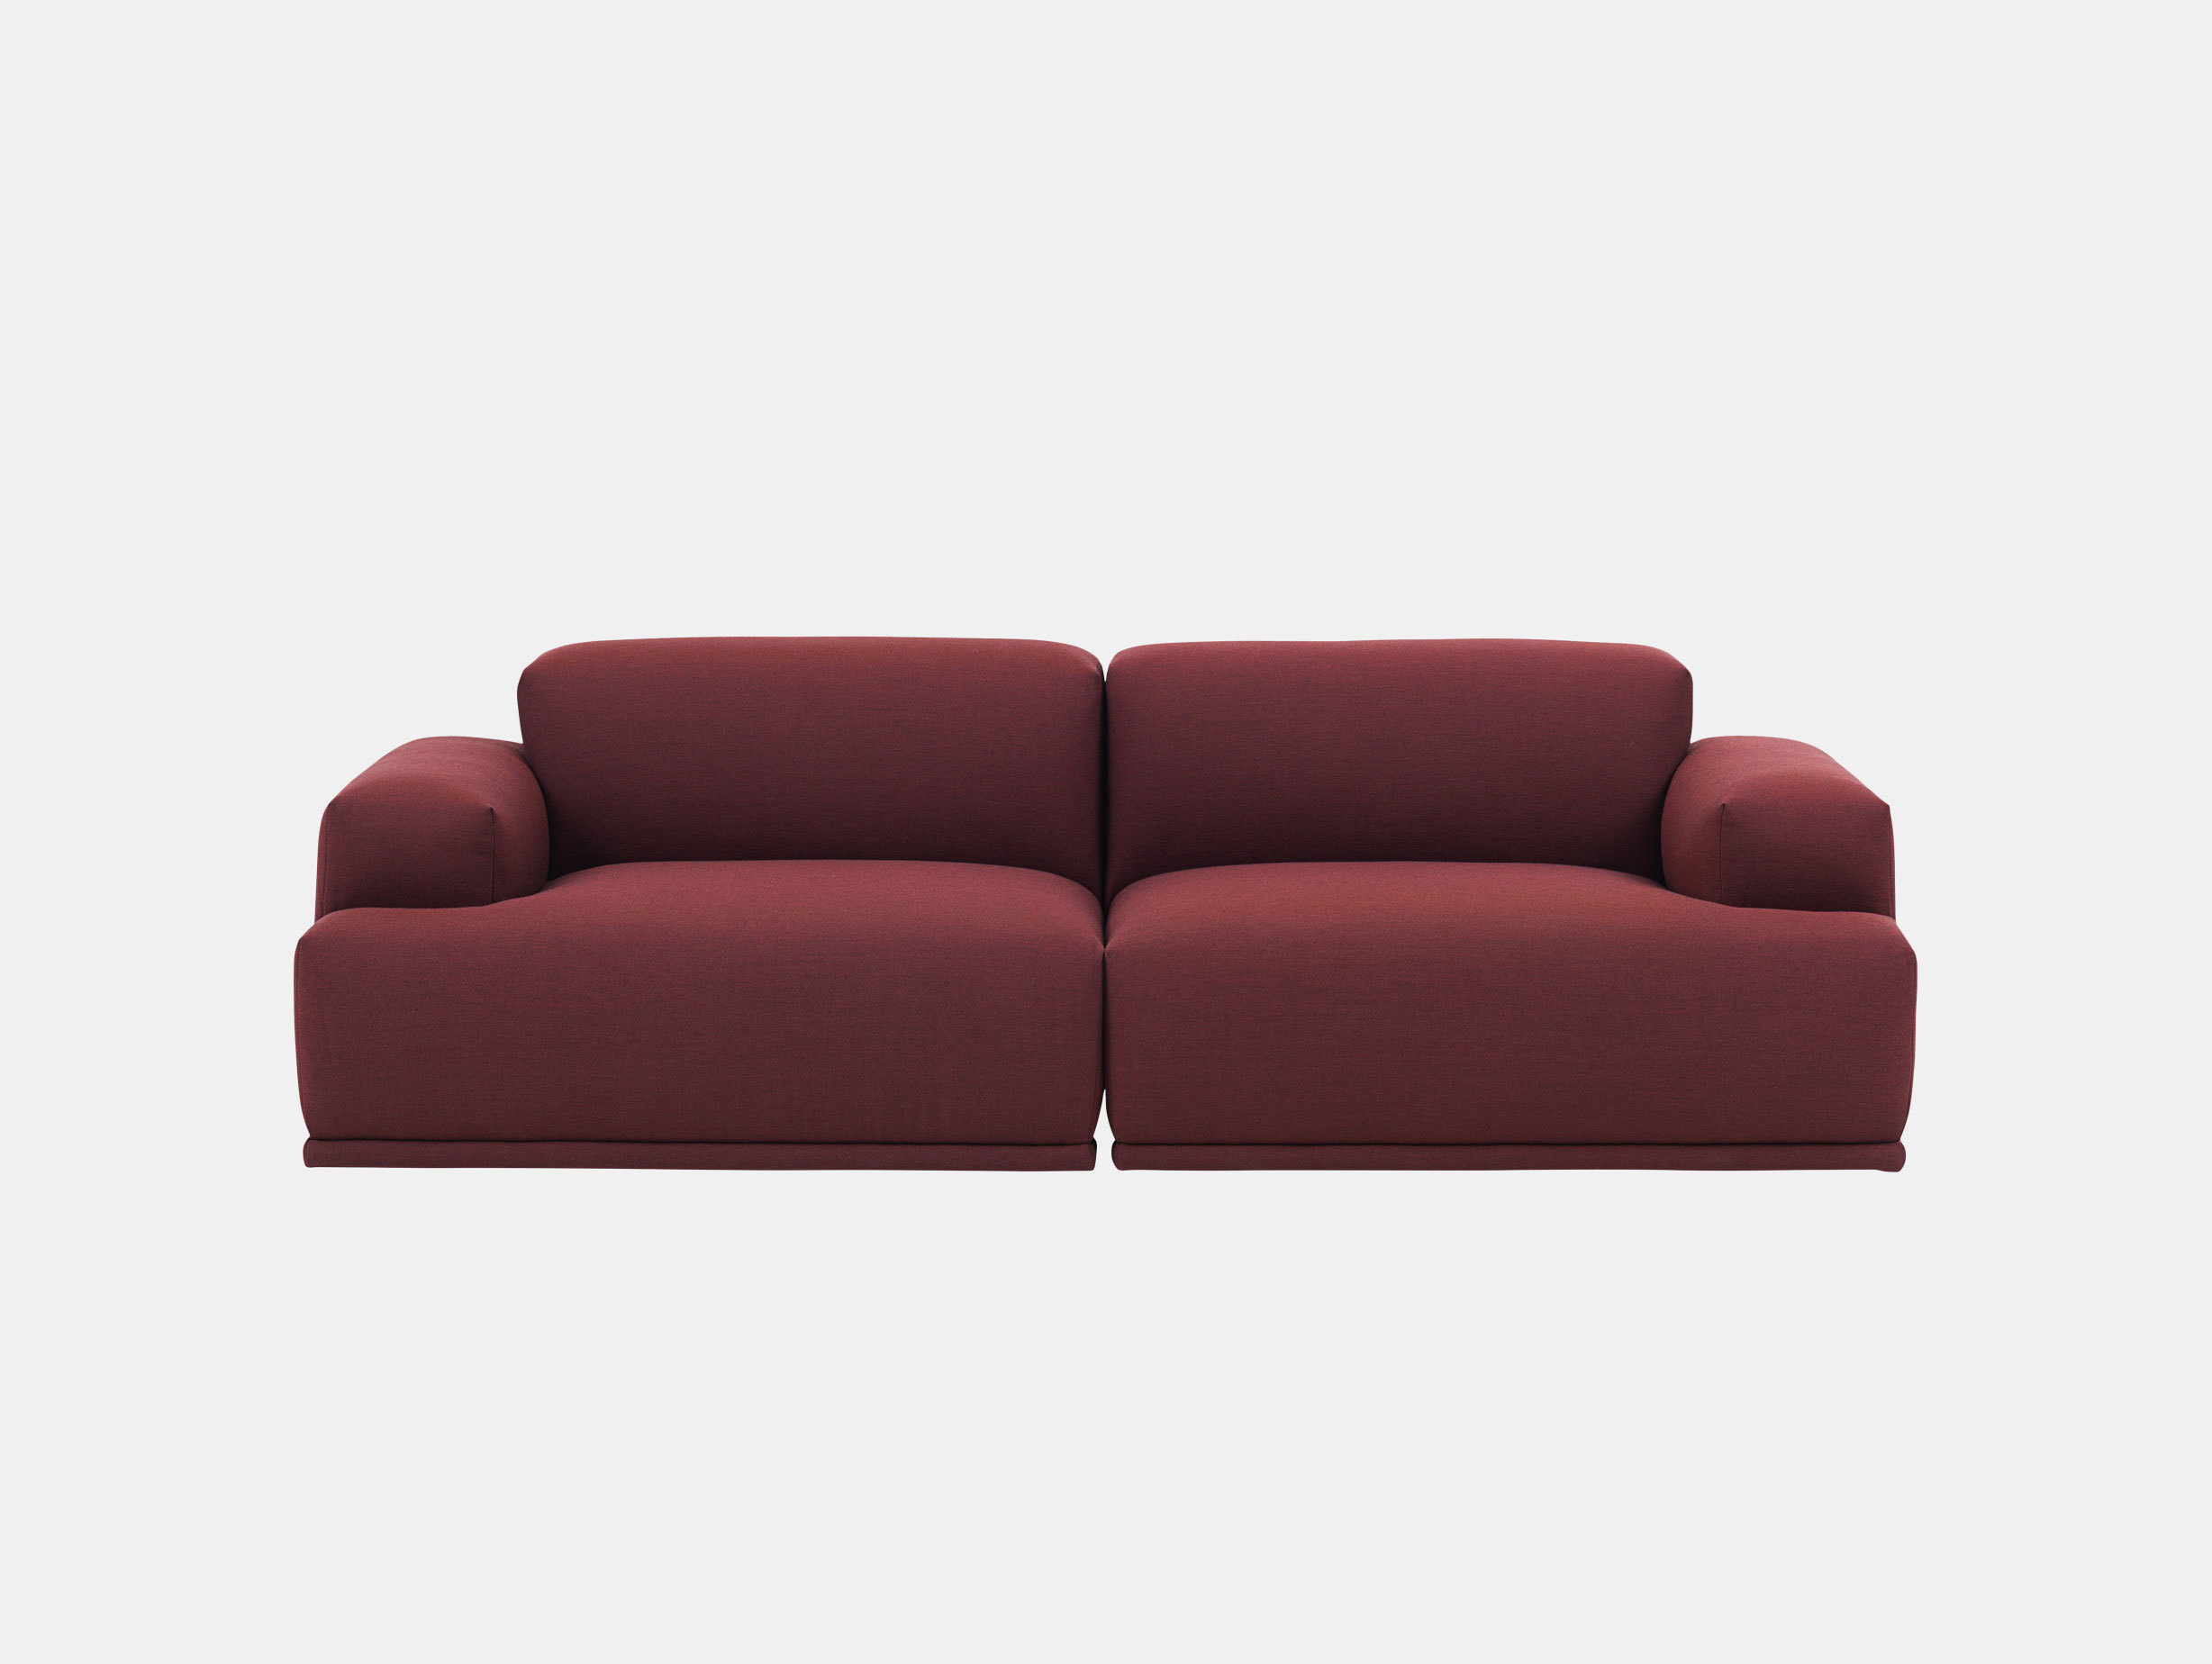 Connect Sofa image 3